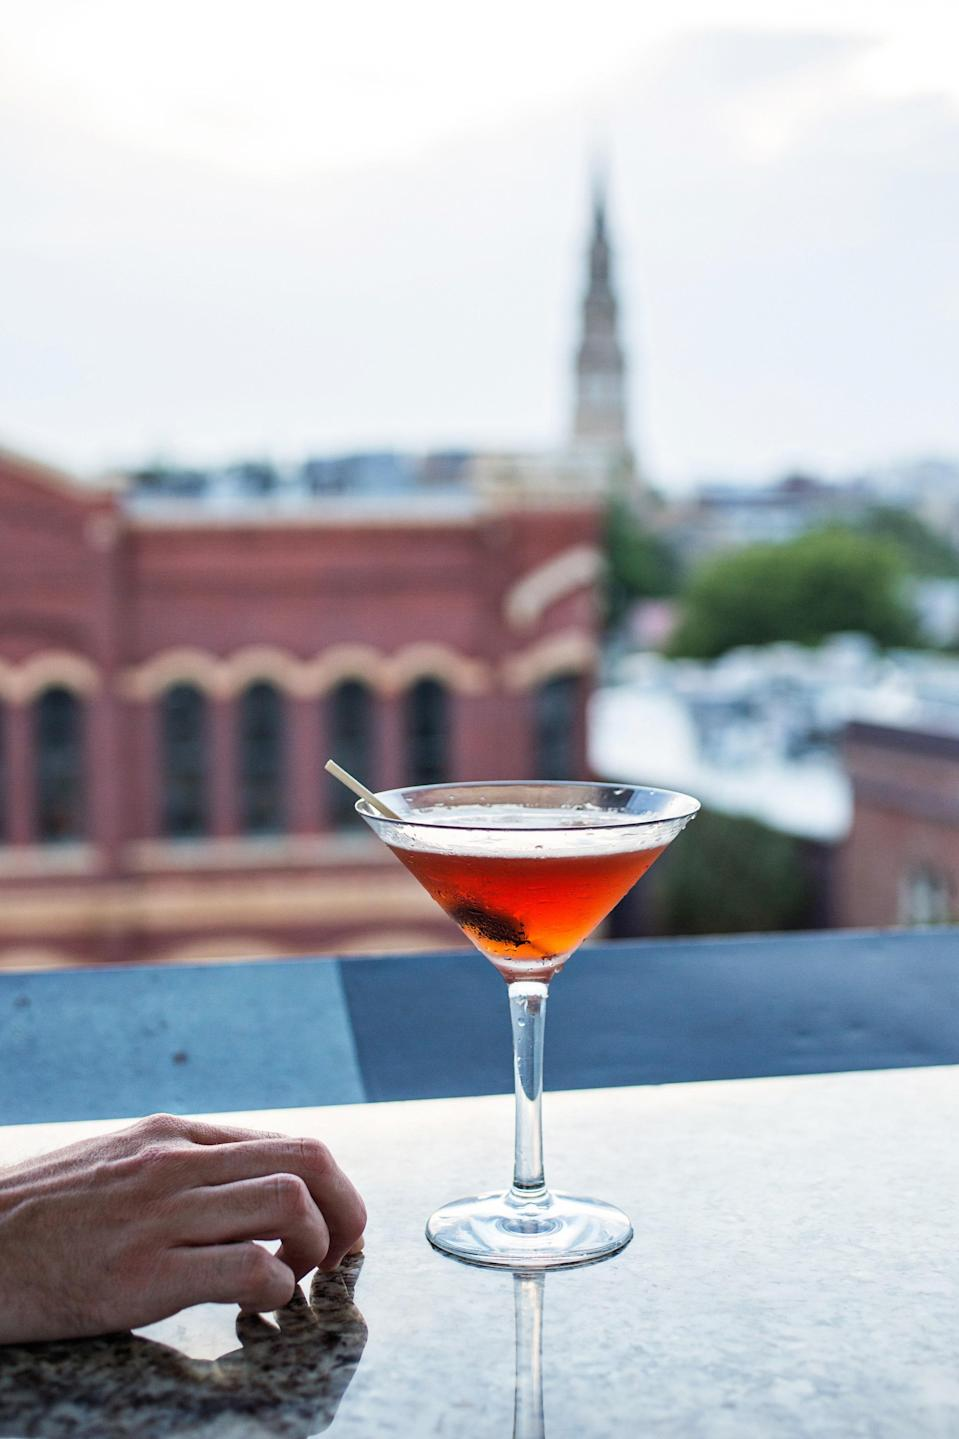 """<p><strong>What'd you think of the place?</strong><br> No ordinary rooftop bar, this. The <a href=""""https://www.cntraveler.com/hotels/charleston/the-vendue?mbid=synd_yahoo_rss"""" rel=""""nofollow noopener"""" target=""""_blank"""" data-ylk=""""slk:Vendue Hotel"""" class=""""link rapid-noclick-resp"""">Vendue Hotel</a> lures in its cocktail-drinking prey with a two-tiered rooftop experience, both levels encompassing different covered and uncovered levels, with the entire environs enlivened by playful Pop-Art installations that will keep the Instagram generation snap-happy. Wooden decking and sun-shaded wicker furniture mixes with chic lighting and gleaming bar tops for a high-end rooftop adventure. The harbor views don't hurt.</p> <p><strong>Who else is there?</strong><br> It's a bar of two levels and a tale of two bars. During the week or pre-sunset on weekends, expect a more grown-up crowd of sophisticates chatting to the bar staff about barrel-aged bourbons and sipping eclectic drinks before heading out to dinner. Once the sun dips past the horizon, Fridays and Saturdays especially become more lively, with young professionals blowing off steam. But they don't blow too hard, and the cross breezes keep things chill.</p> <p><strong>And the drinks? Anything special?</strong><br> The cocktail list is at once recognizable, but then it has you looking again at the twists the staff have spun on the classics. Their margarita comes 'picante' and their mule is peach-flavored. The gin and Aperol freshness of the Gypsy Lips is a firm favorite as the weather warms up, as is their In Too Deep grapefruit-vodka concoction. Beers and wines run a reassuring gamut of international and local.</p> <p><strong>How was the food?</strong><br> As with the drinks, the impressively diverse food offering is mostly favorites with a little something extra. The crab fritters are deviled, the sliders come with shrimp, and the steak salad has a Korean tinge. There's a pleasing sandwich selection (the blackened salmon BLT is """